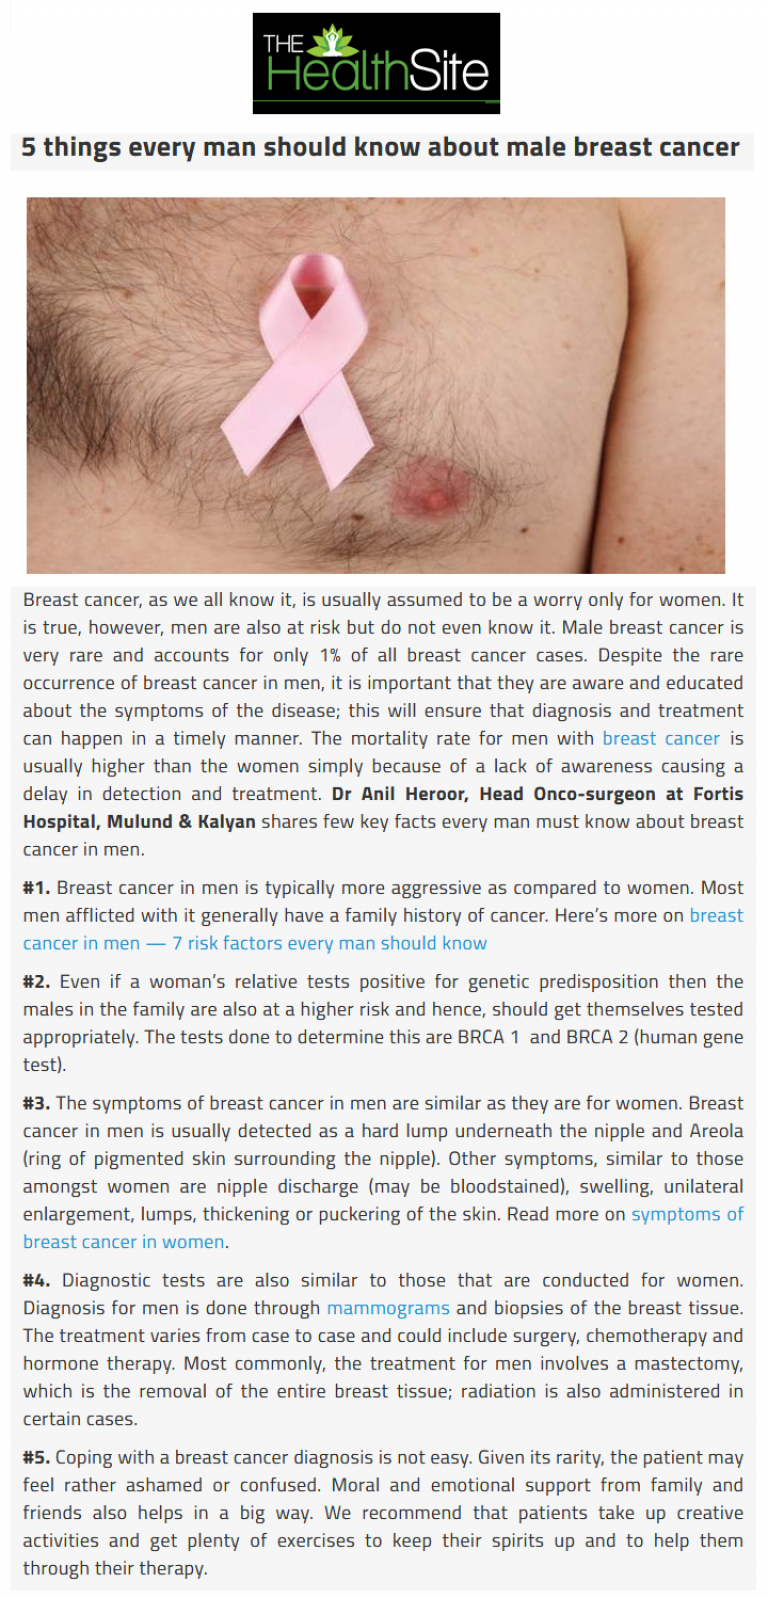 News - 5 Things Every Man Should Know about Male Breast Cancer